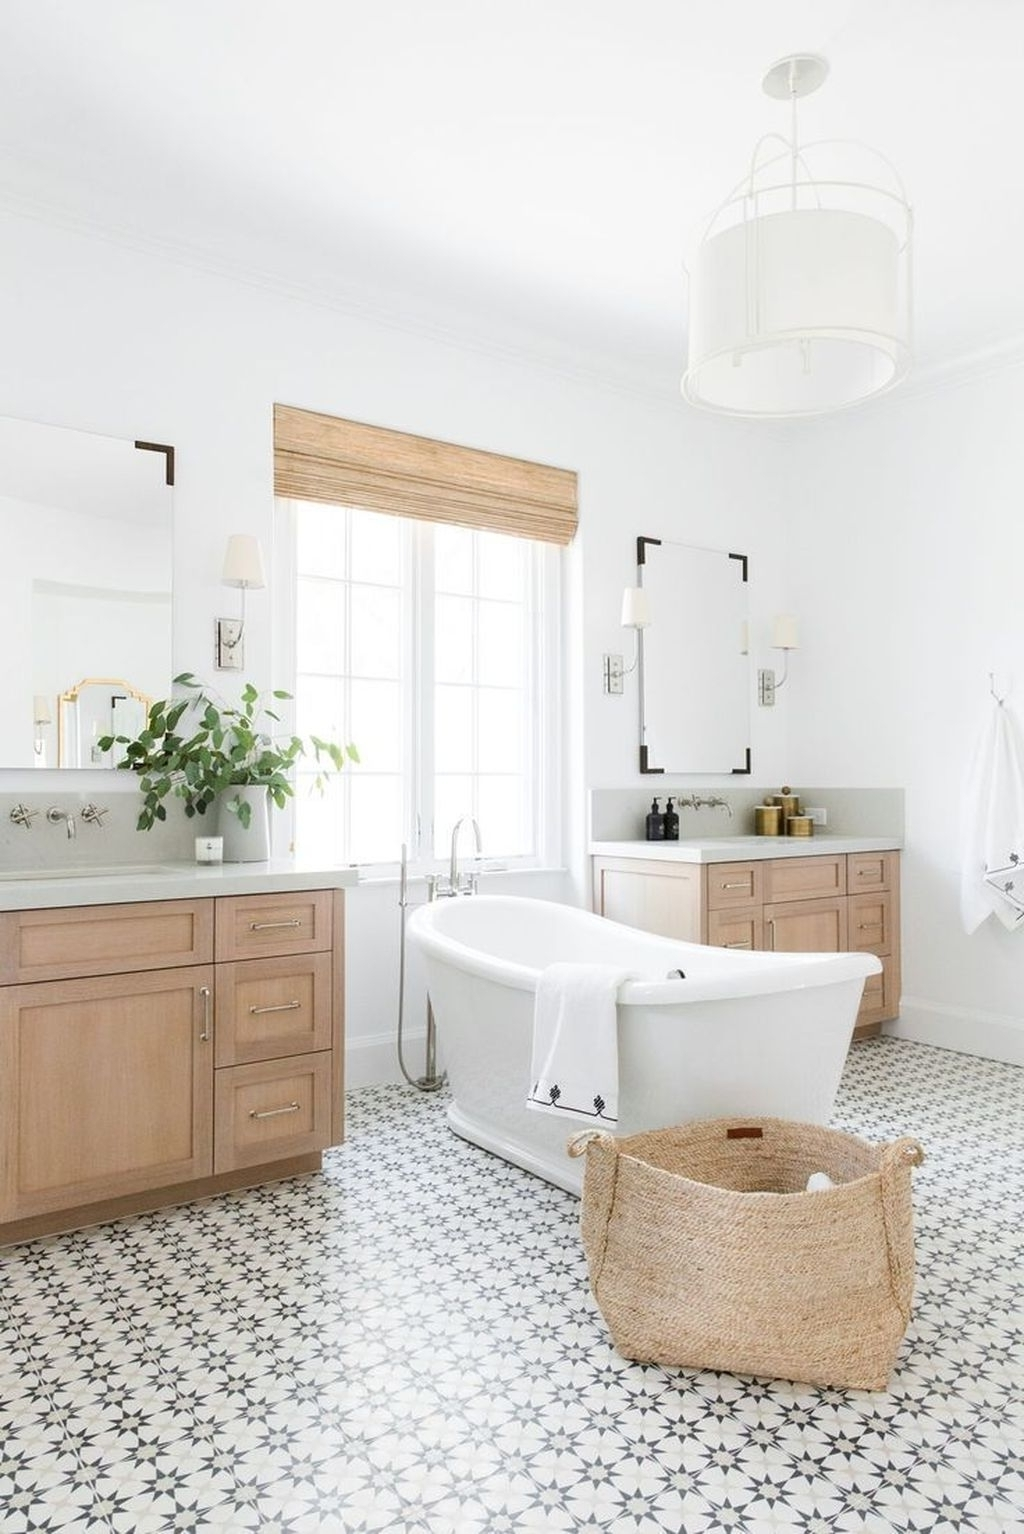 40 Best Fixer Upper Bathrooms Ideas That You Have To Know Fixer Upper Bathroom Design